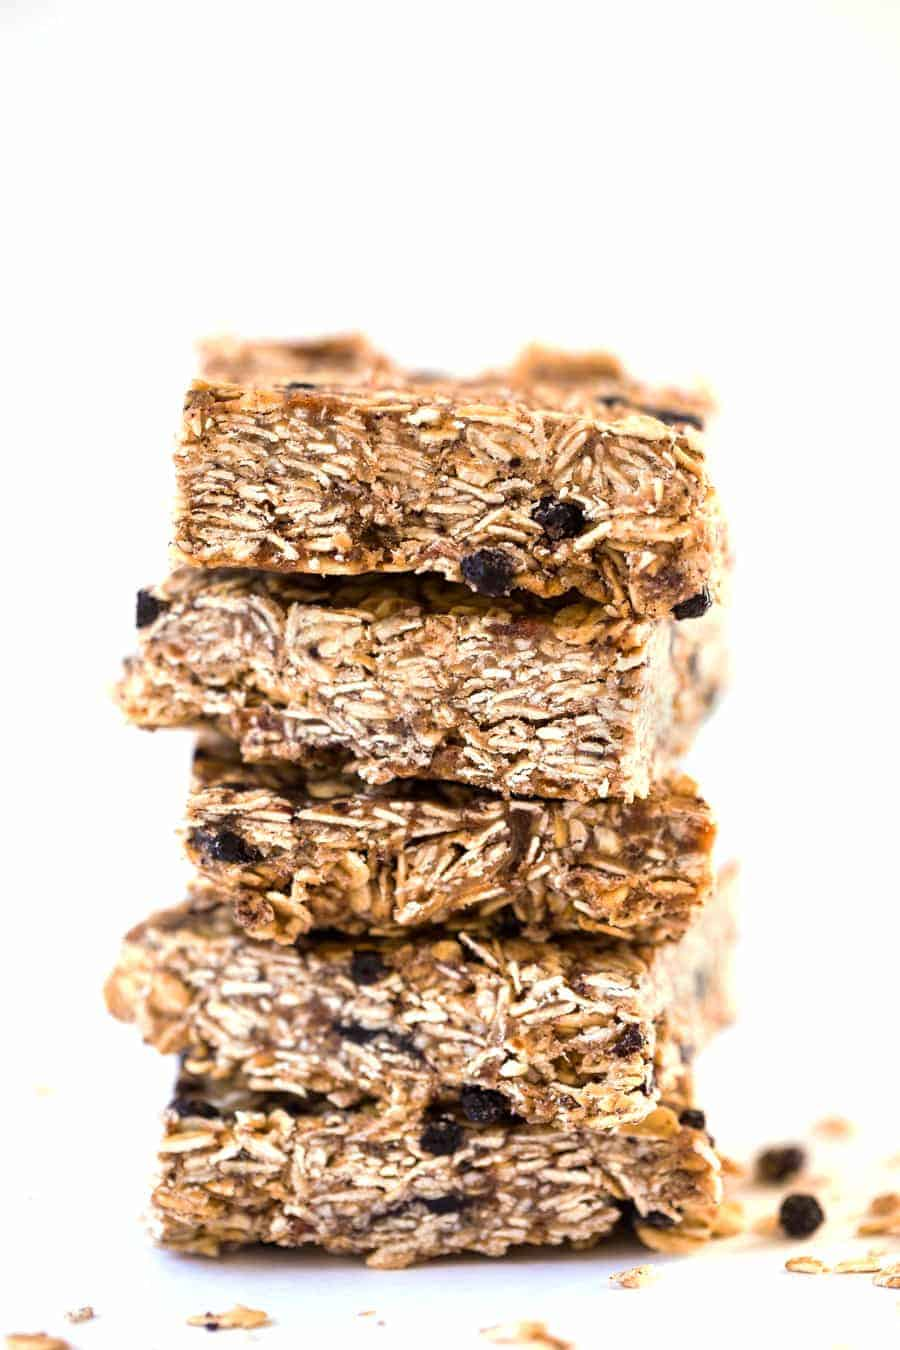 These NO BAKE Acai Granola Bars are a simple, DIY snack that is naturally sweet, vegan and SUPER healthy!